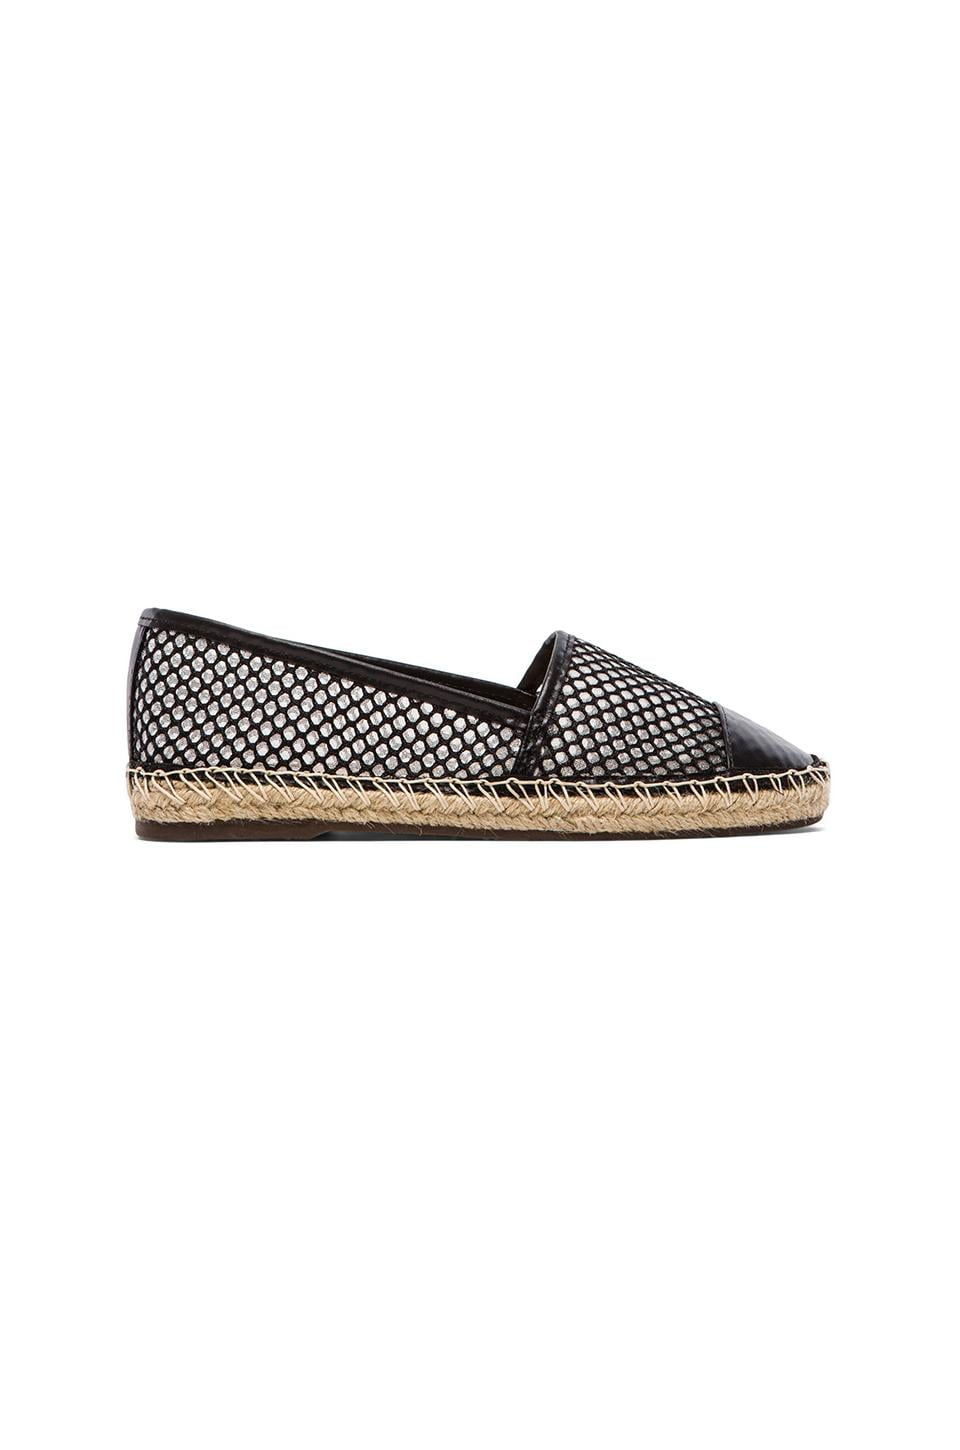 Schutz Fossa Flat in Black